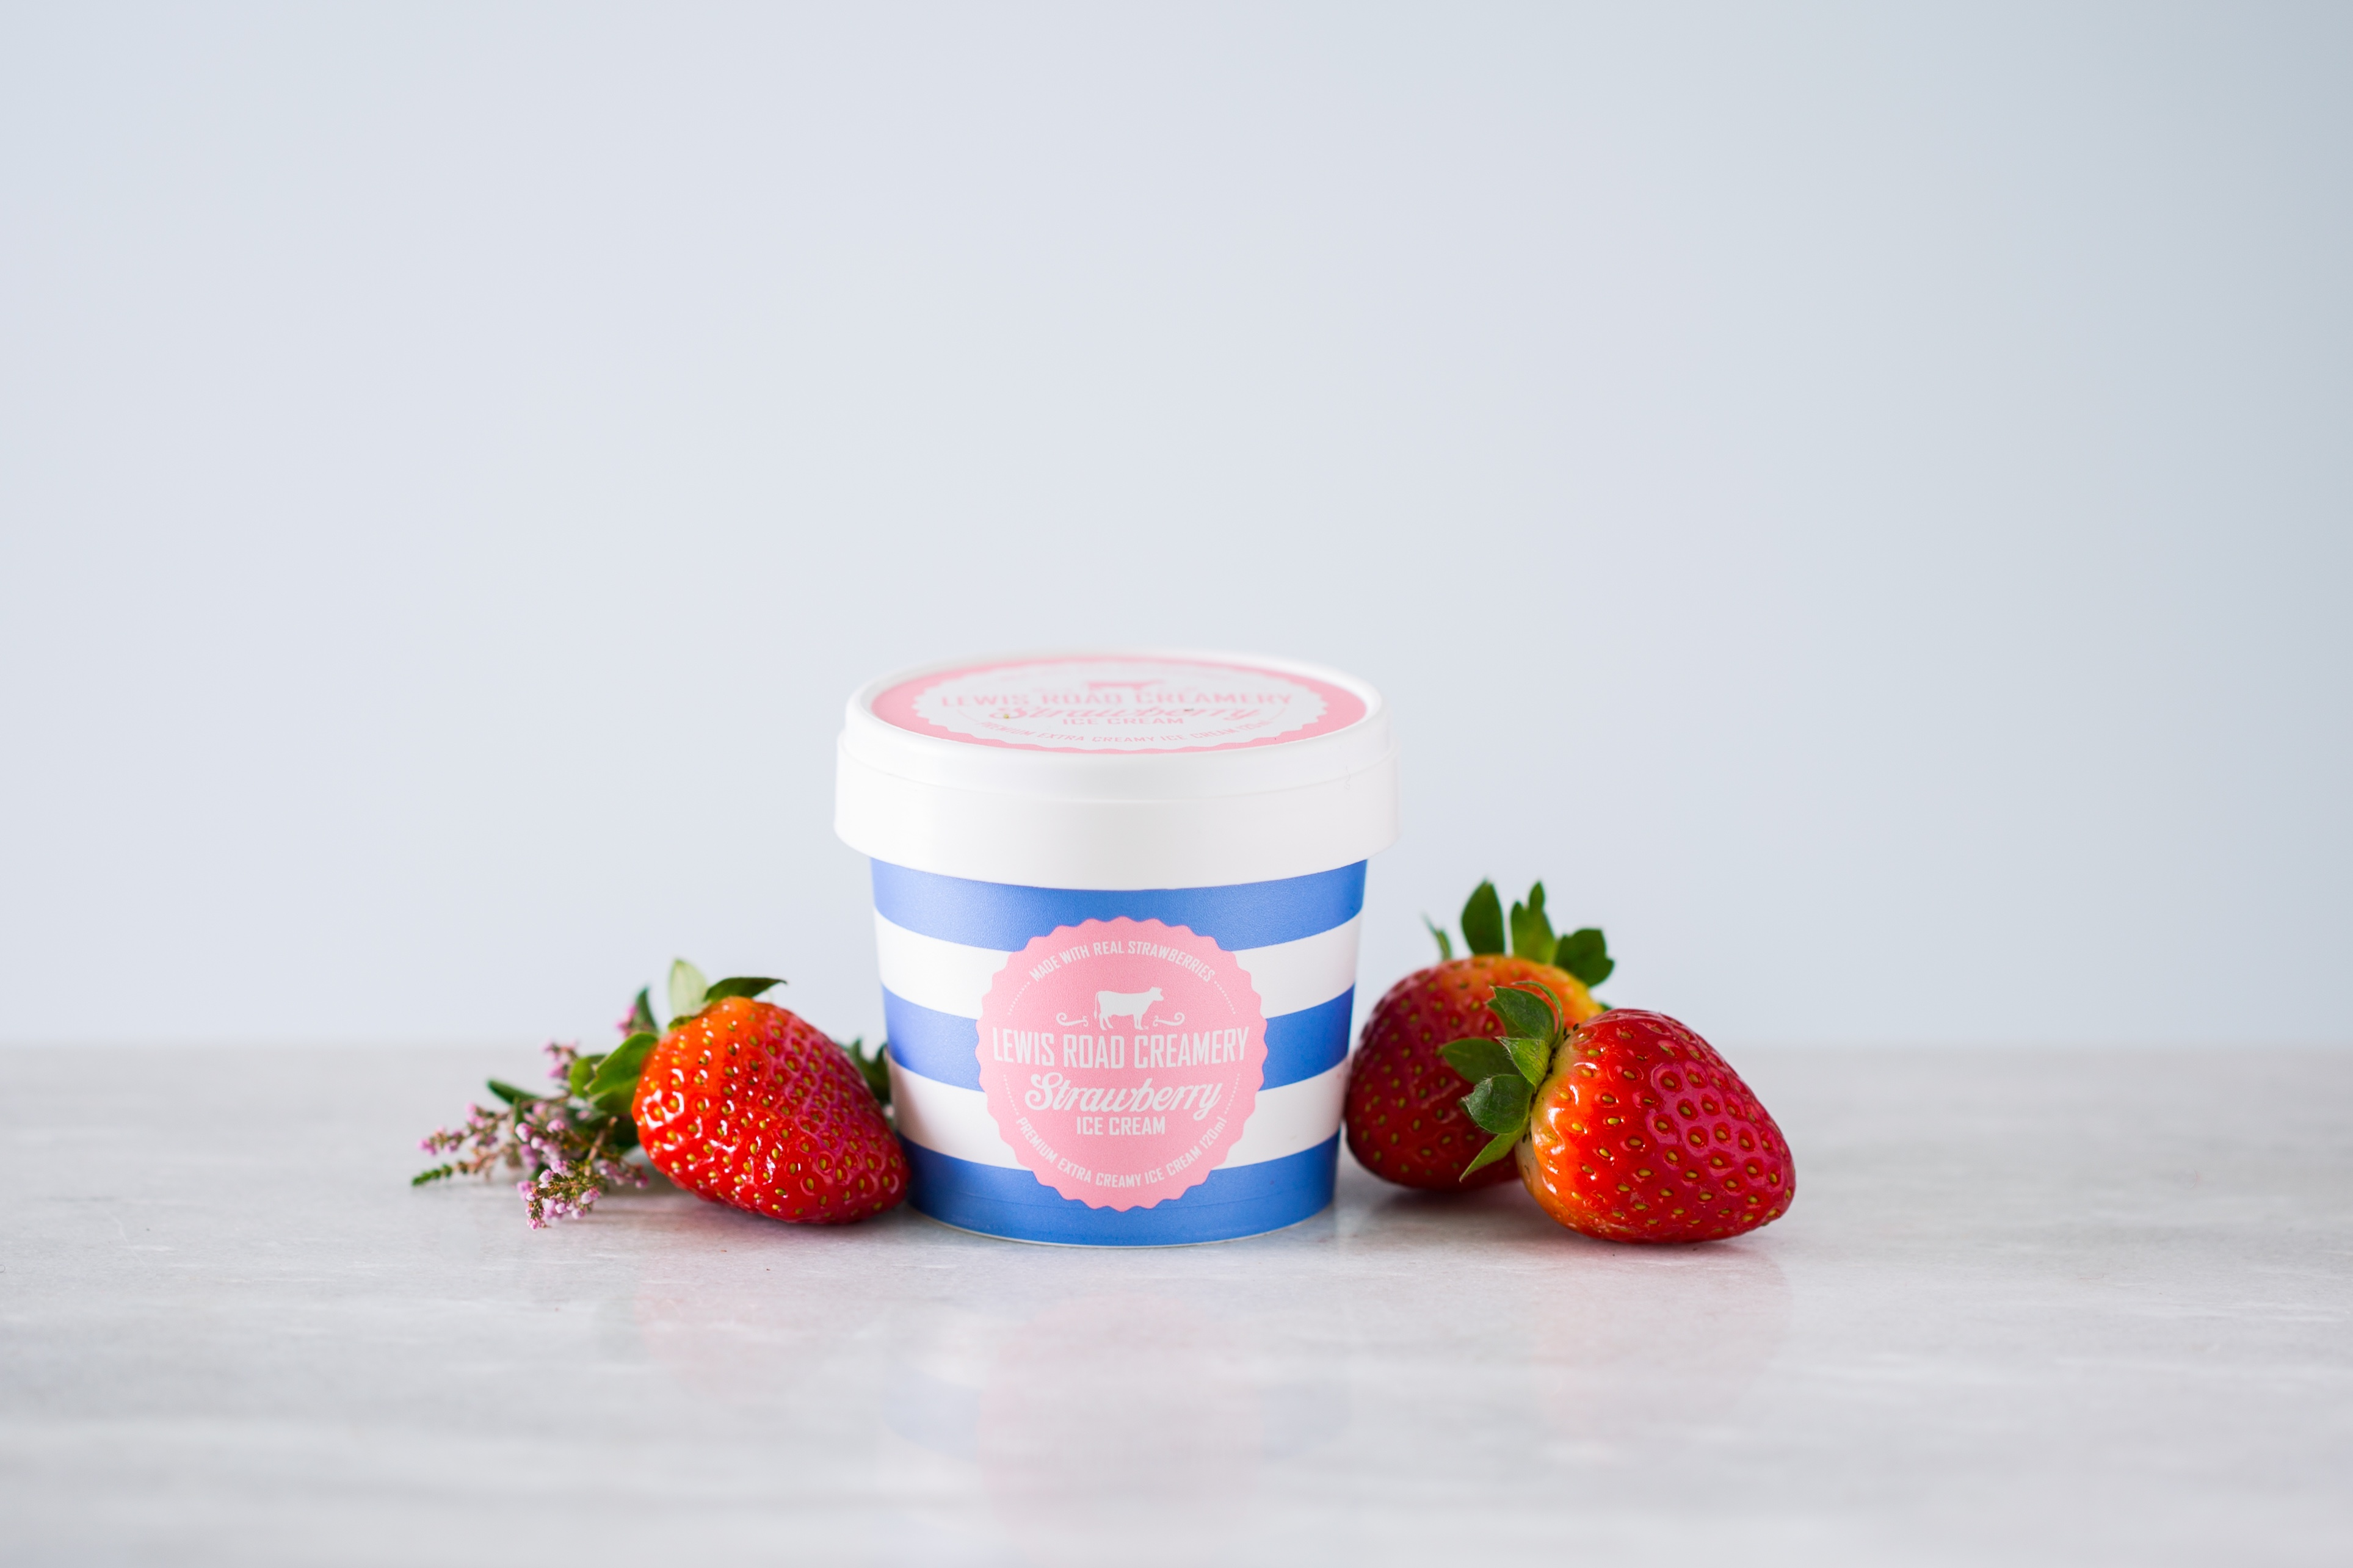 Lewis Road Creamery Premium Strawberry Ice Cream - one day only flavour[1]